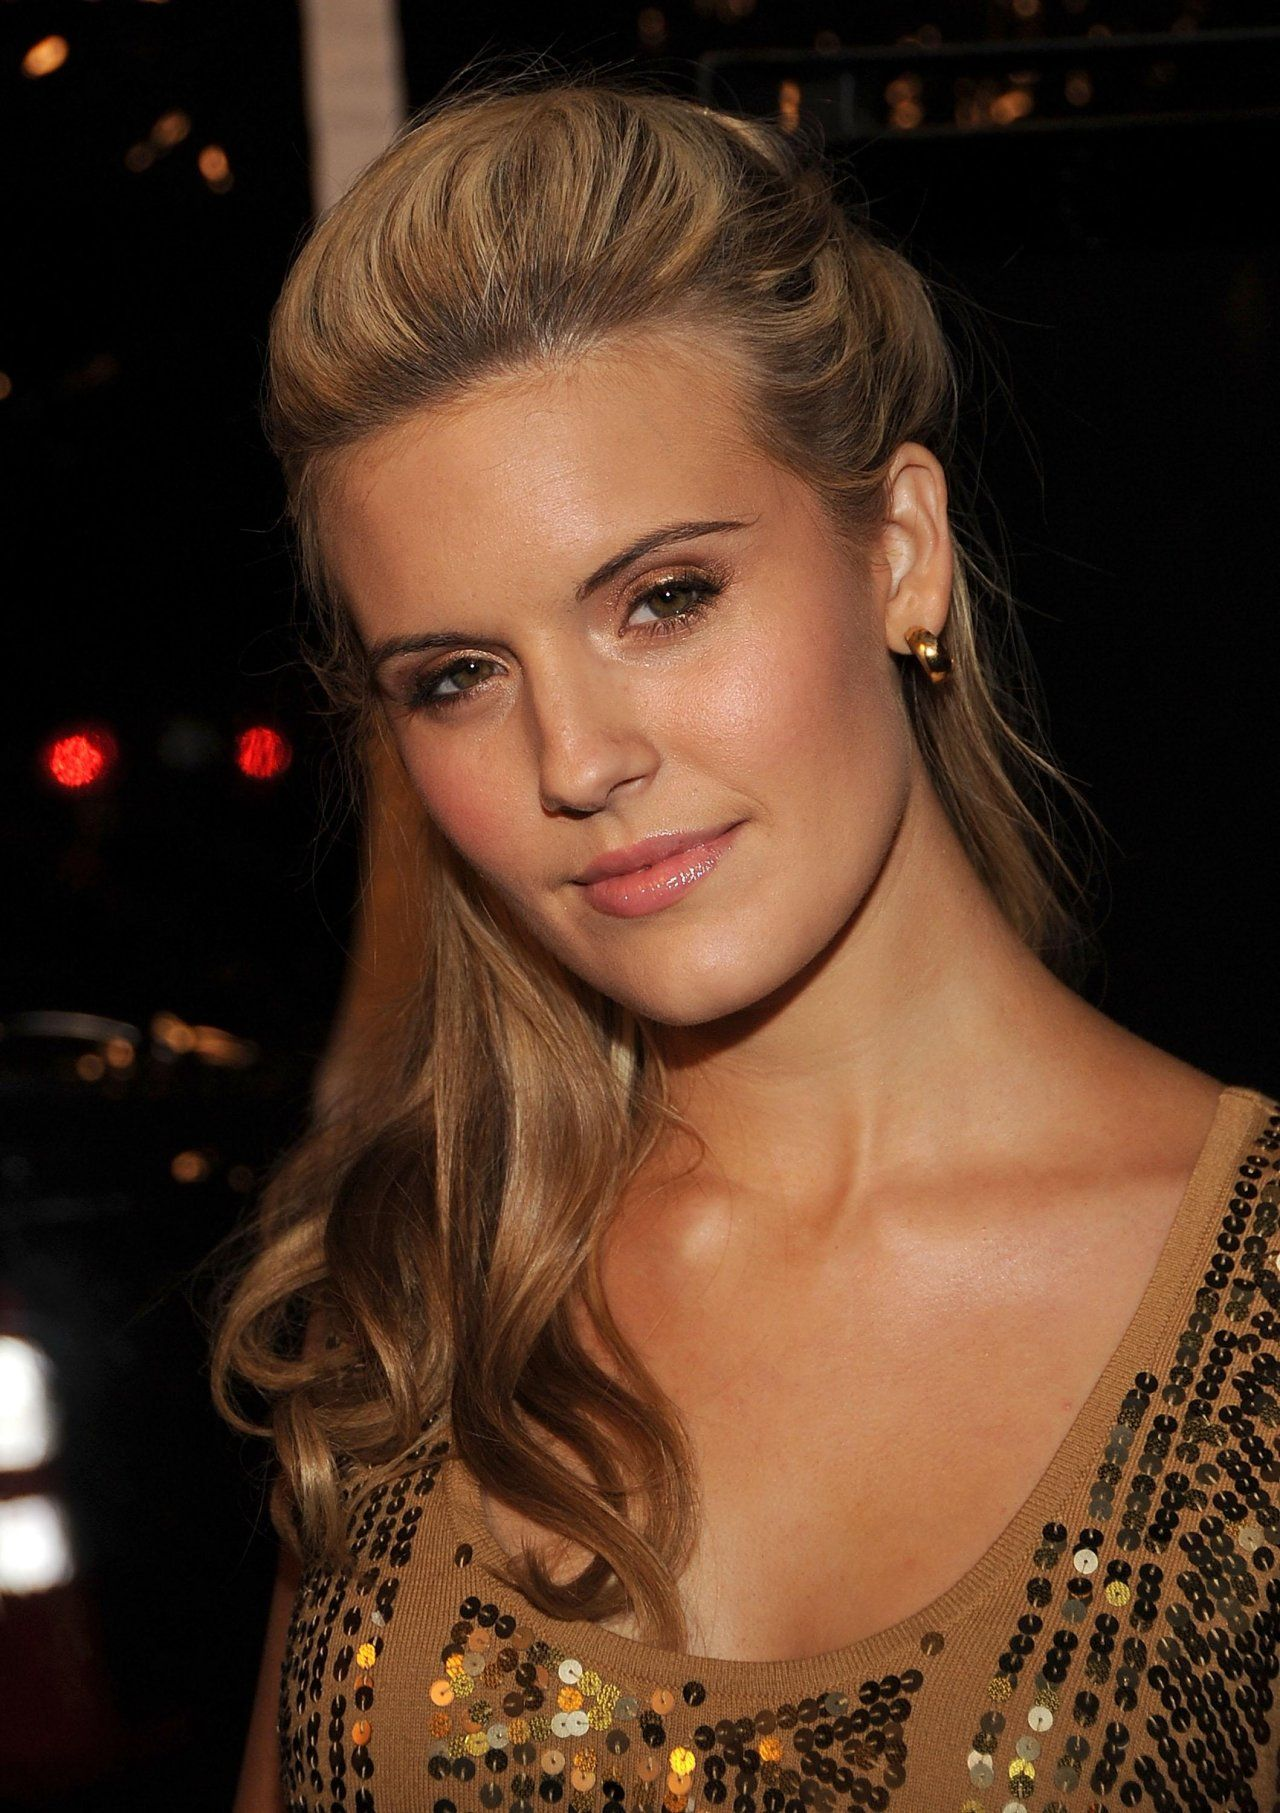 maggie grace faith californication season 6 she looks